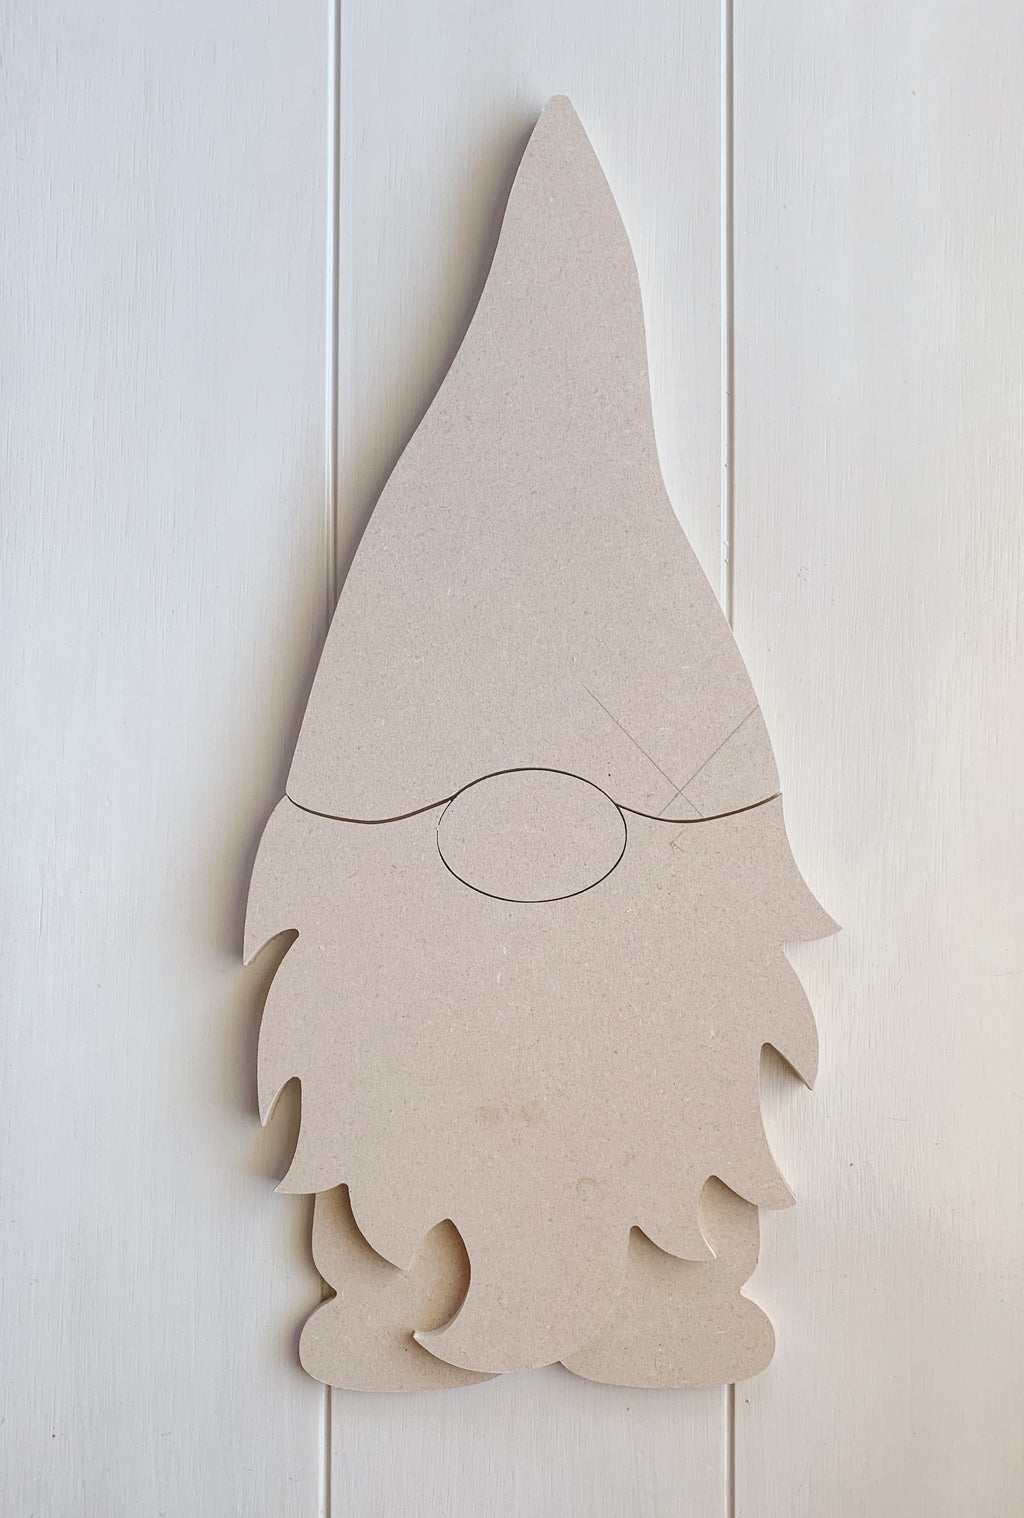 Gnome Cut Out, Wood Gnome, DIY Gnome Kit, Wood Cut Out, Woodland Gnome, Gnome